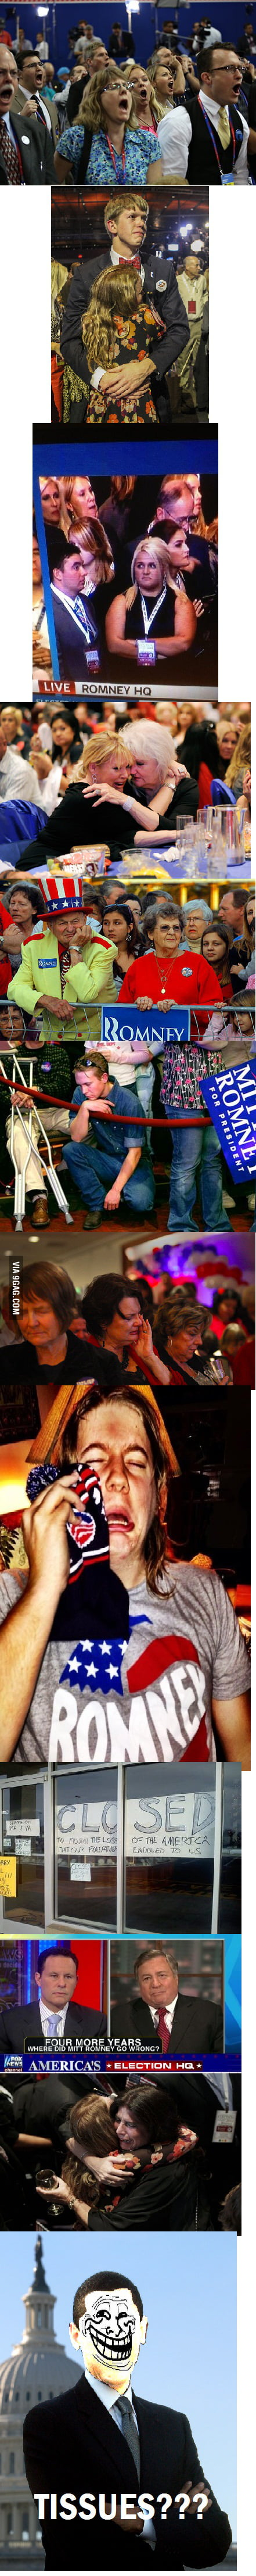 Sad conservatives are sad after the election... tissues???